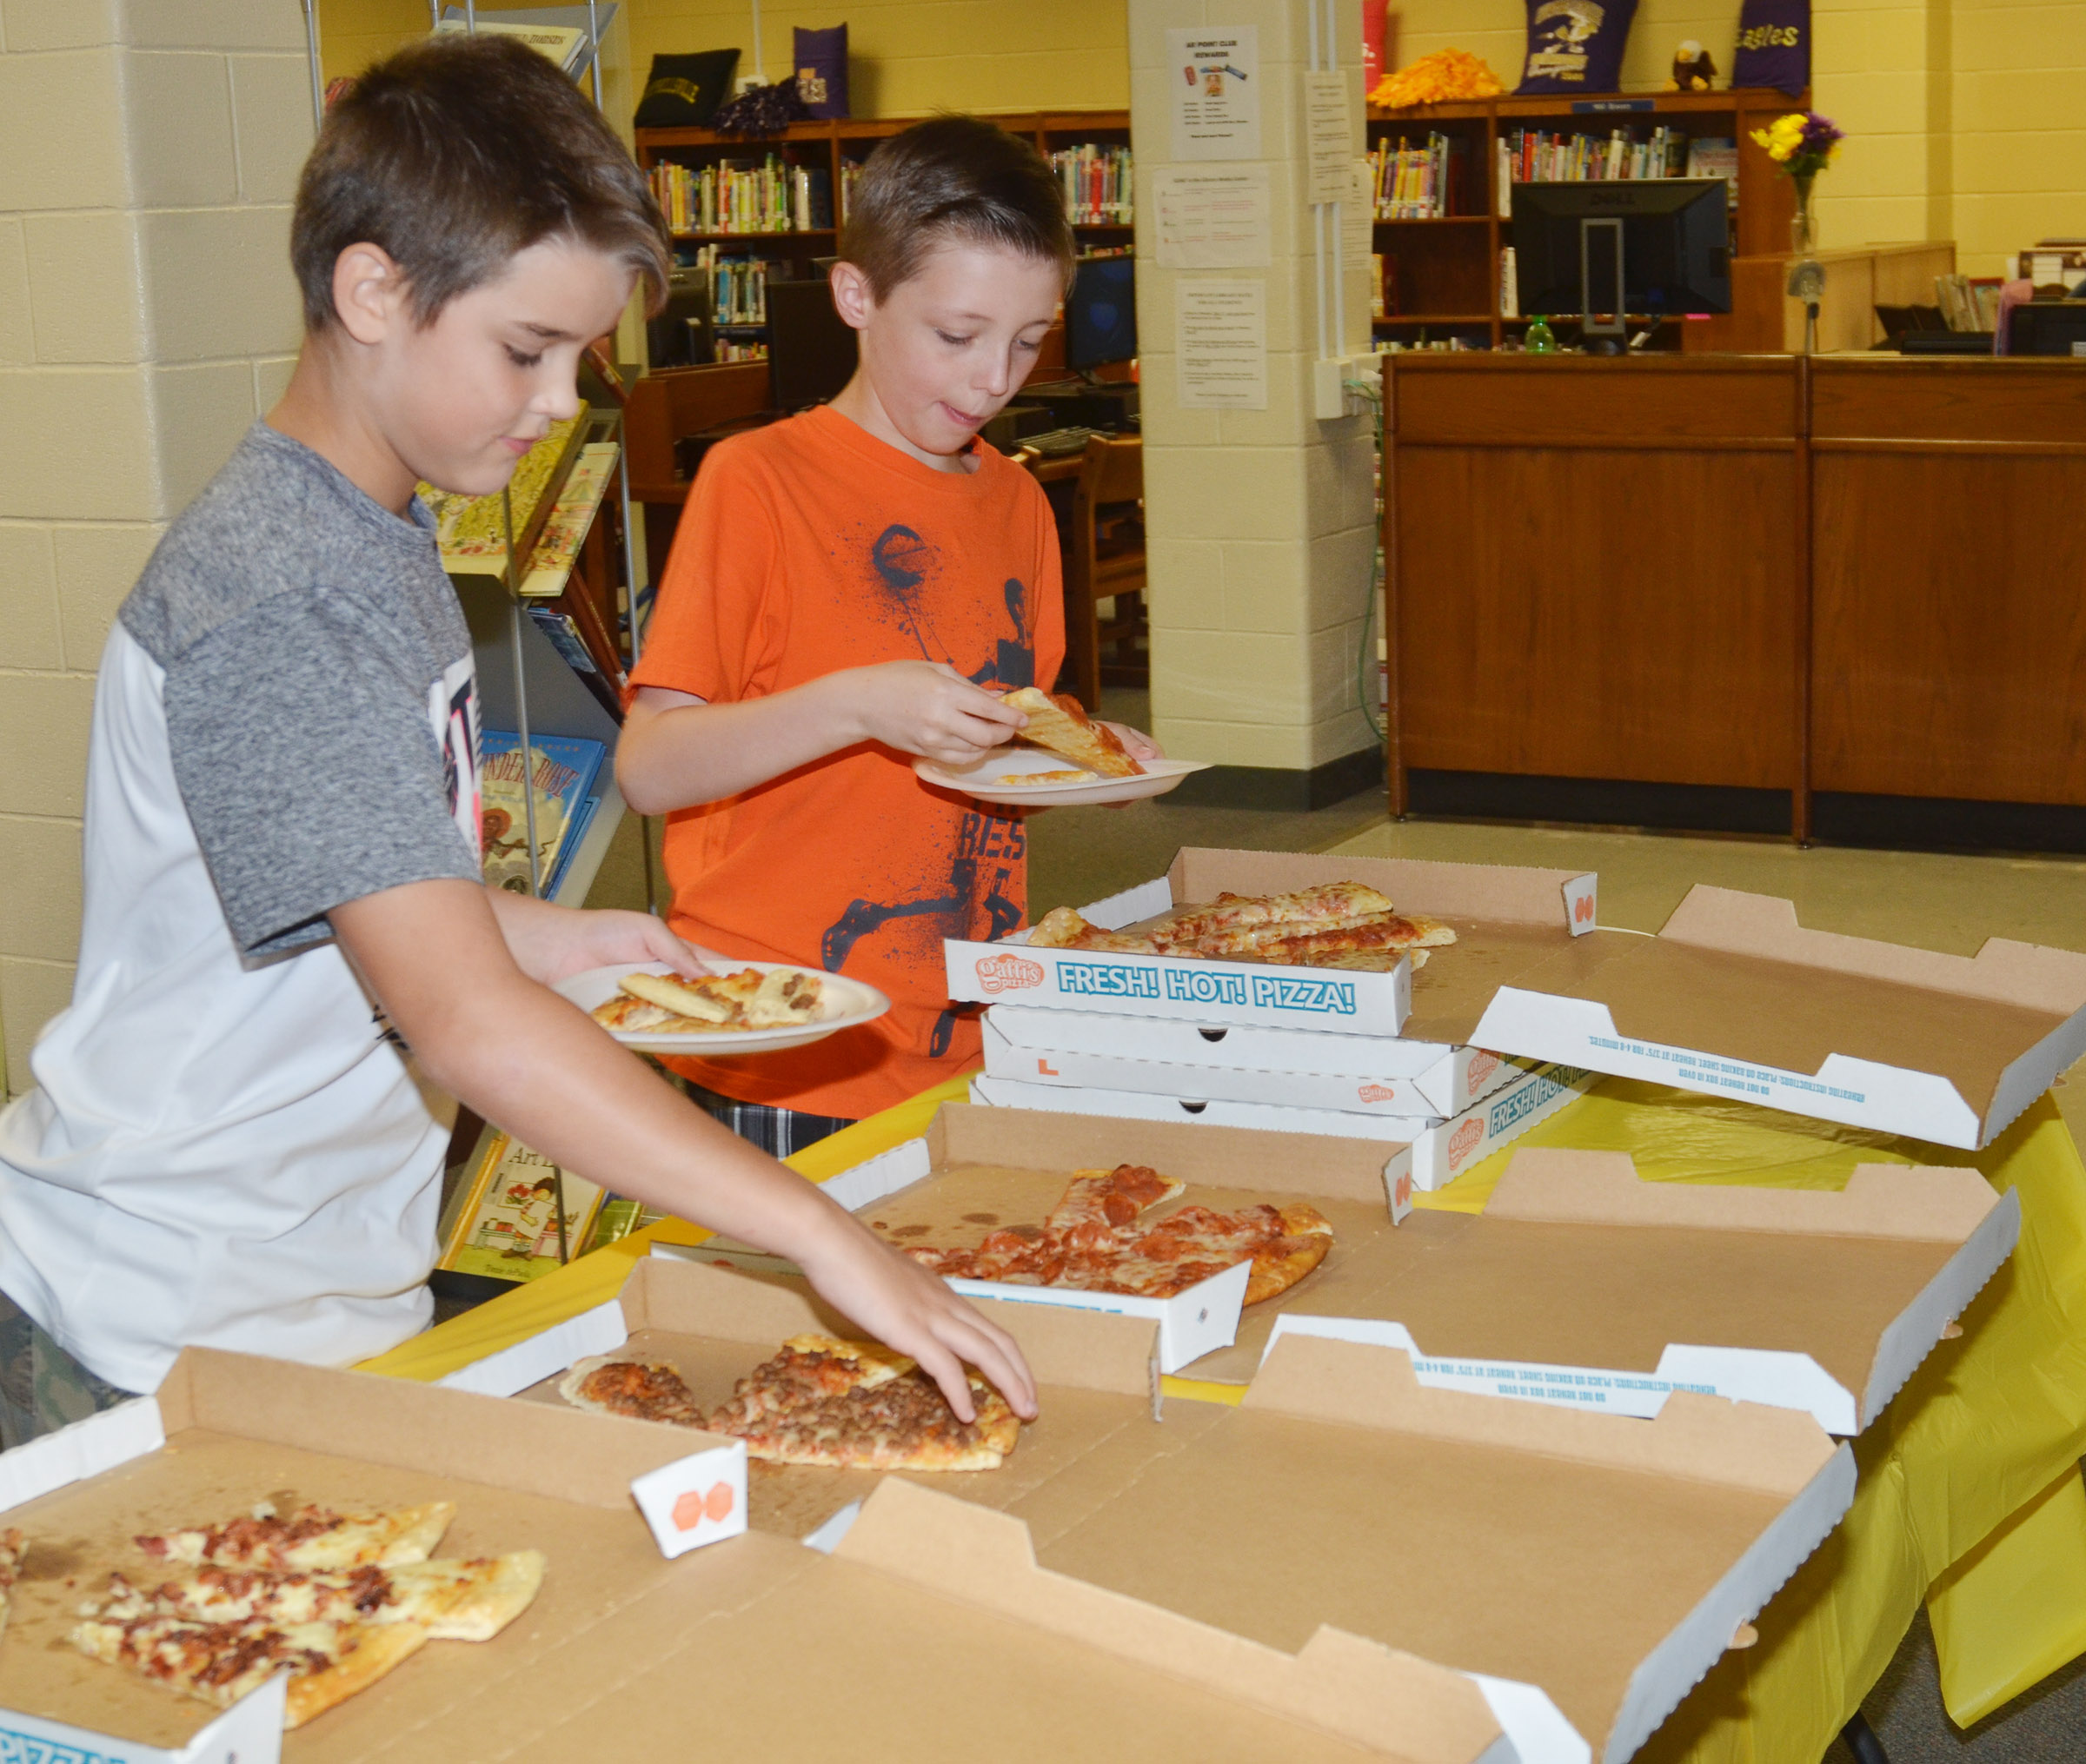 CMS fifth-grader Kaden Bloyd, at left, and fourth-grader Jaxon Garrett enjoy a pizza lunch.